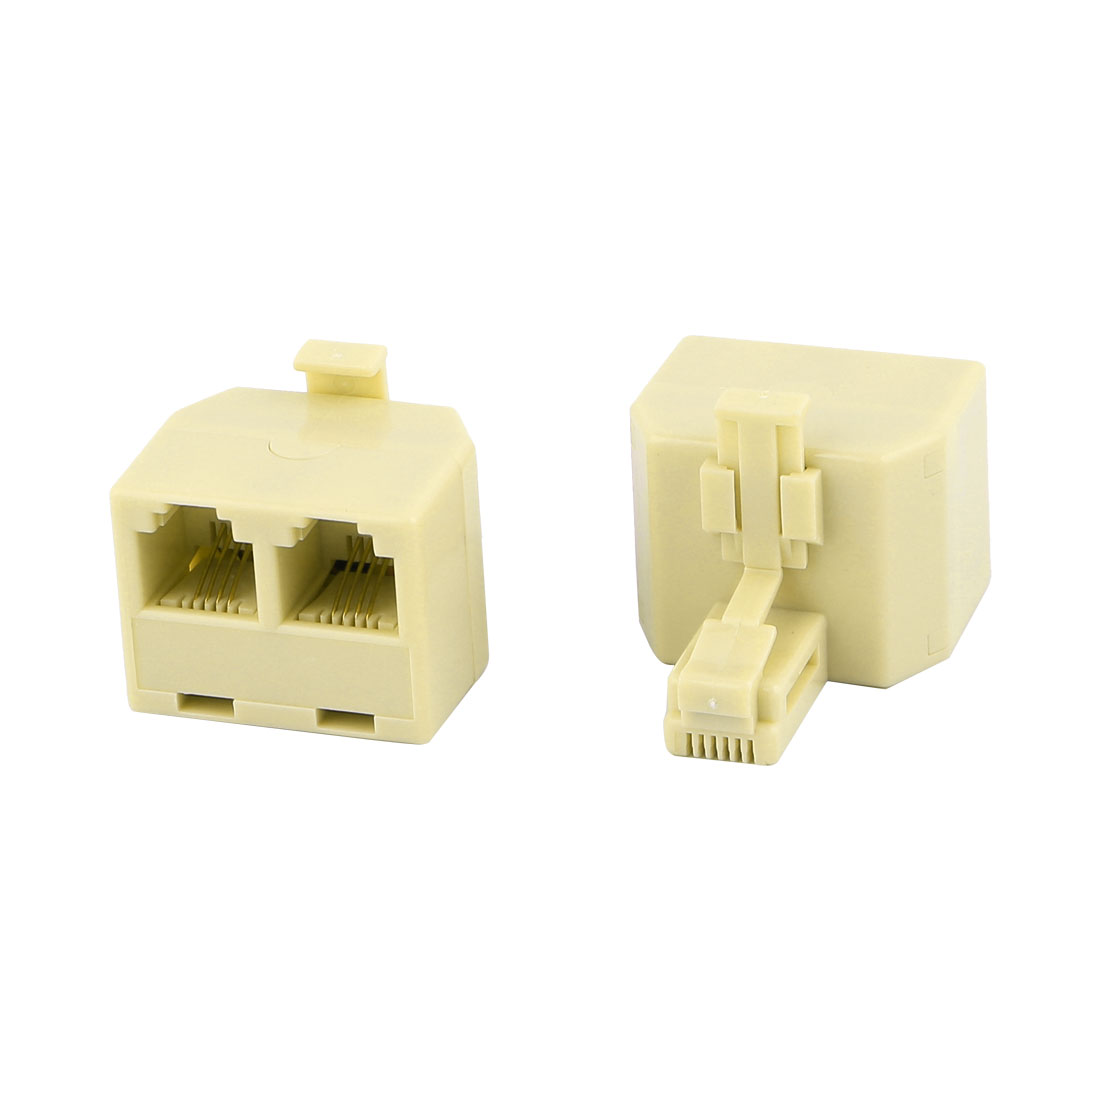 2 Female to Male RJ11 Plug Telephone Cable Adapter 2 Pcs